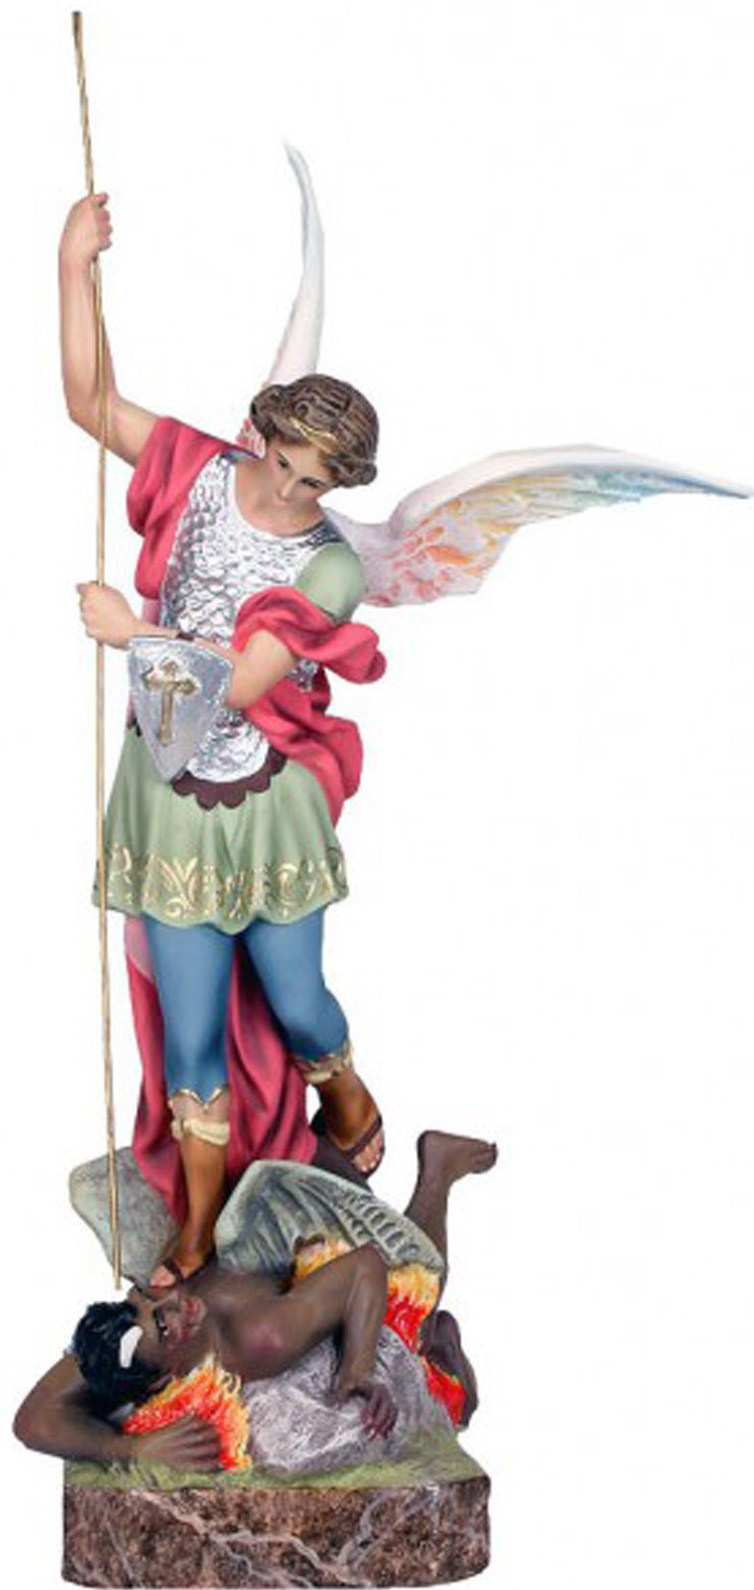 Image Of St Michael The Archangel Imagery Of Olot